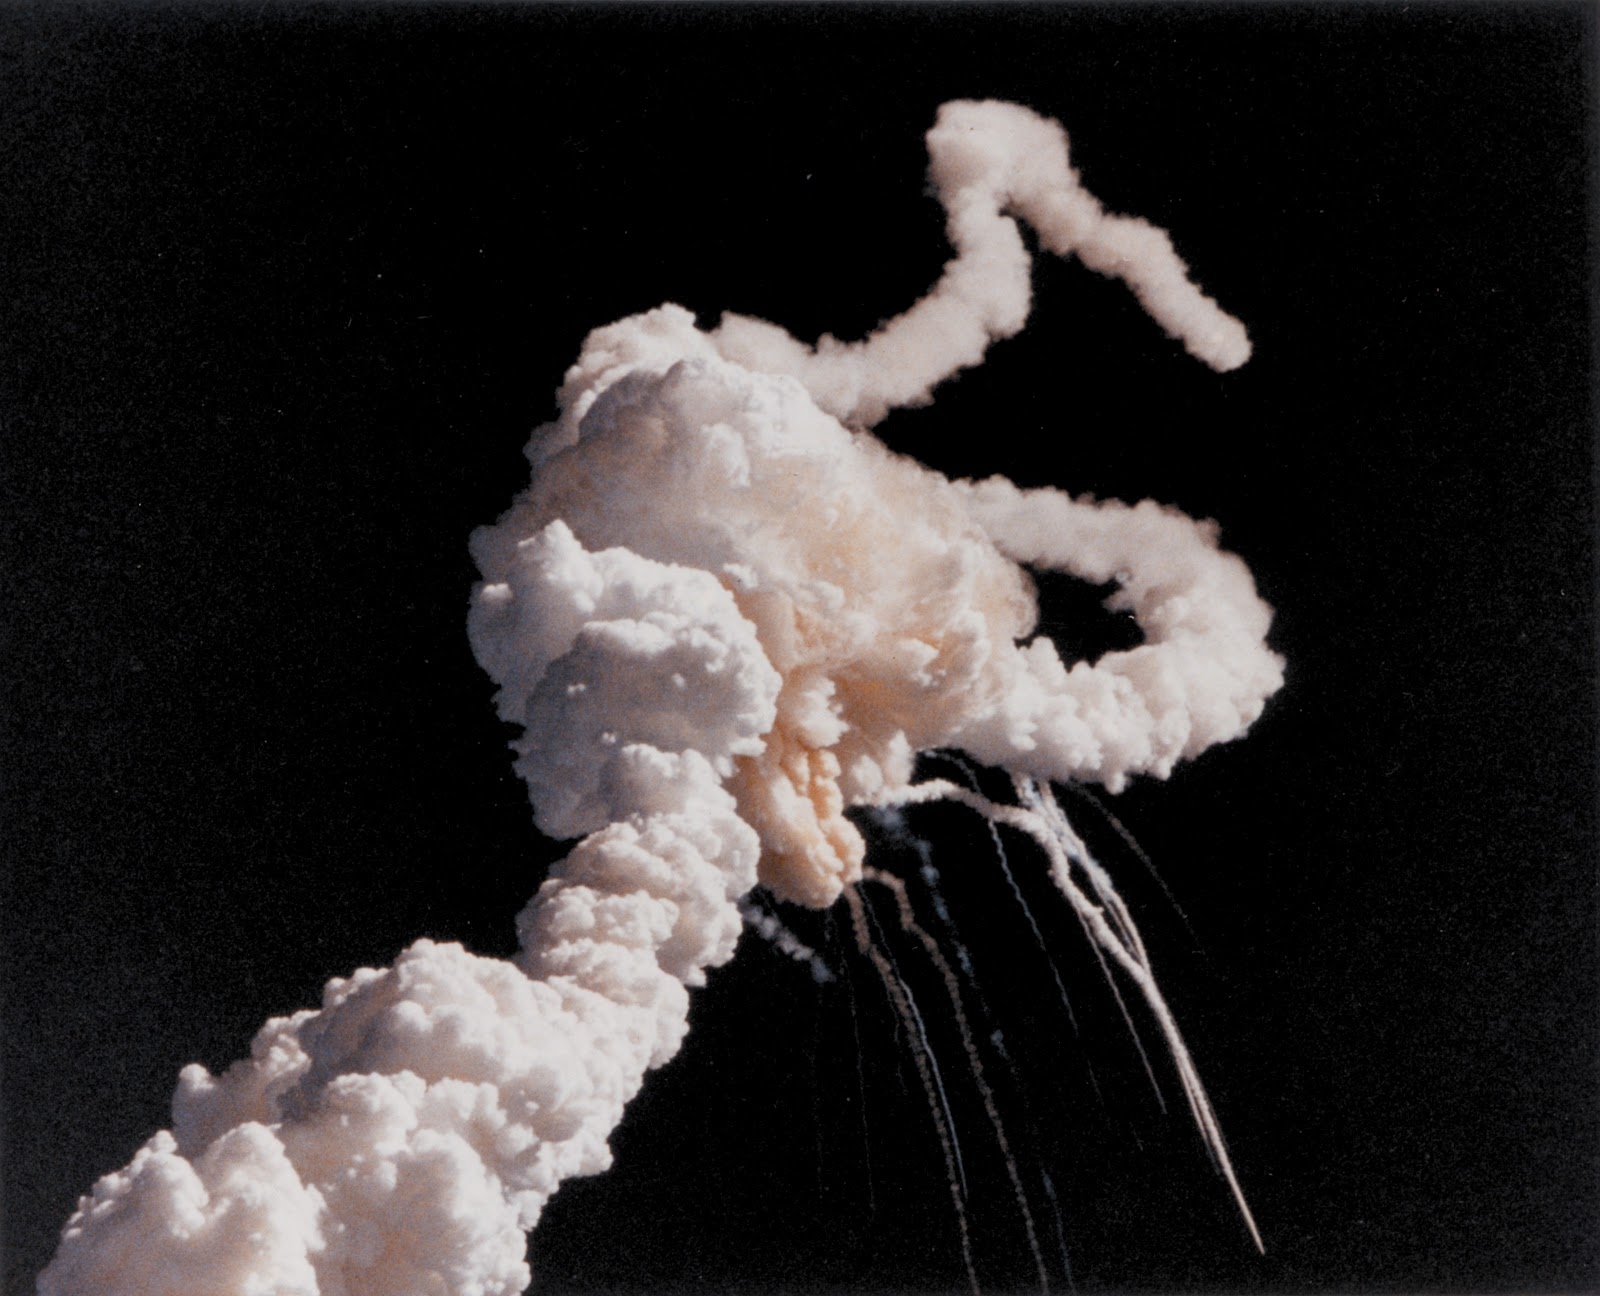 Space Shuttle Challenger was